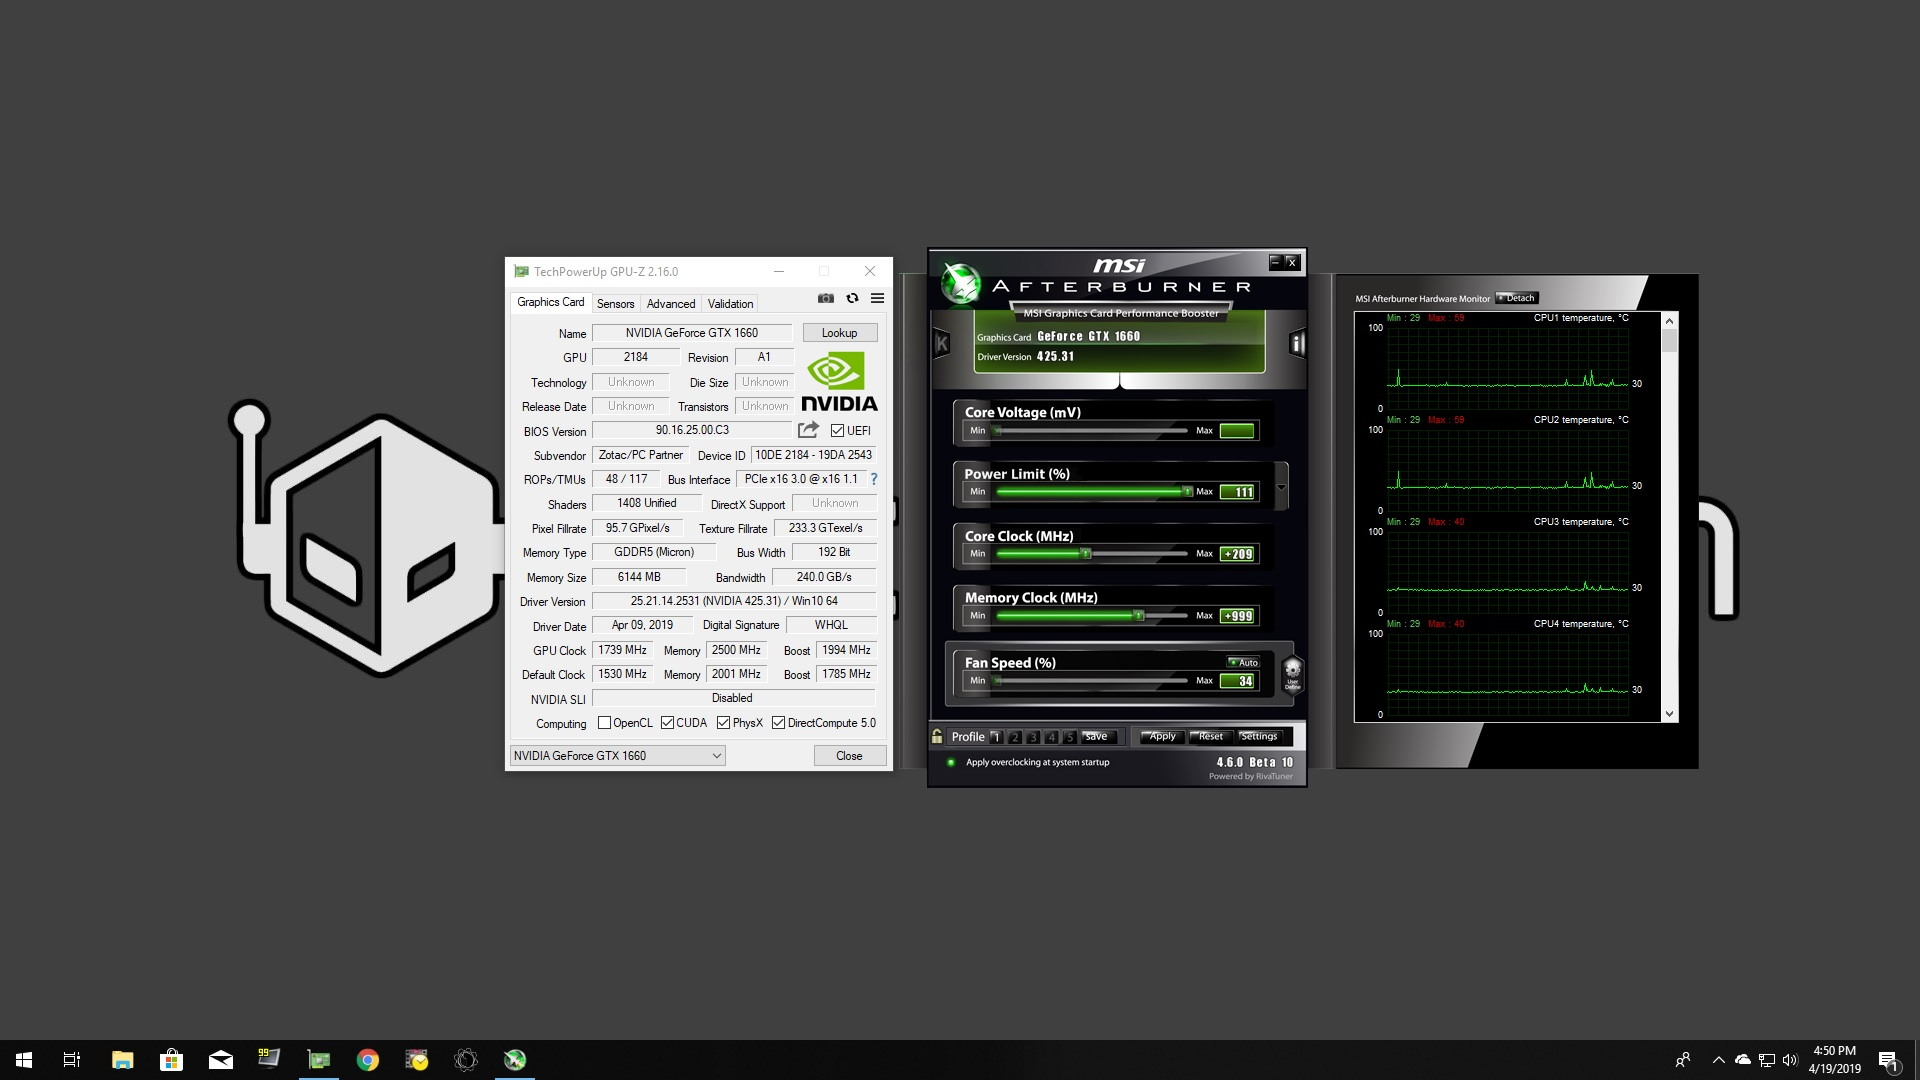 Overclocking The Zotac Gaming GeForce GTX 1660 For